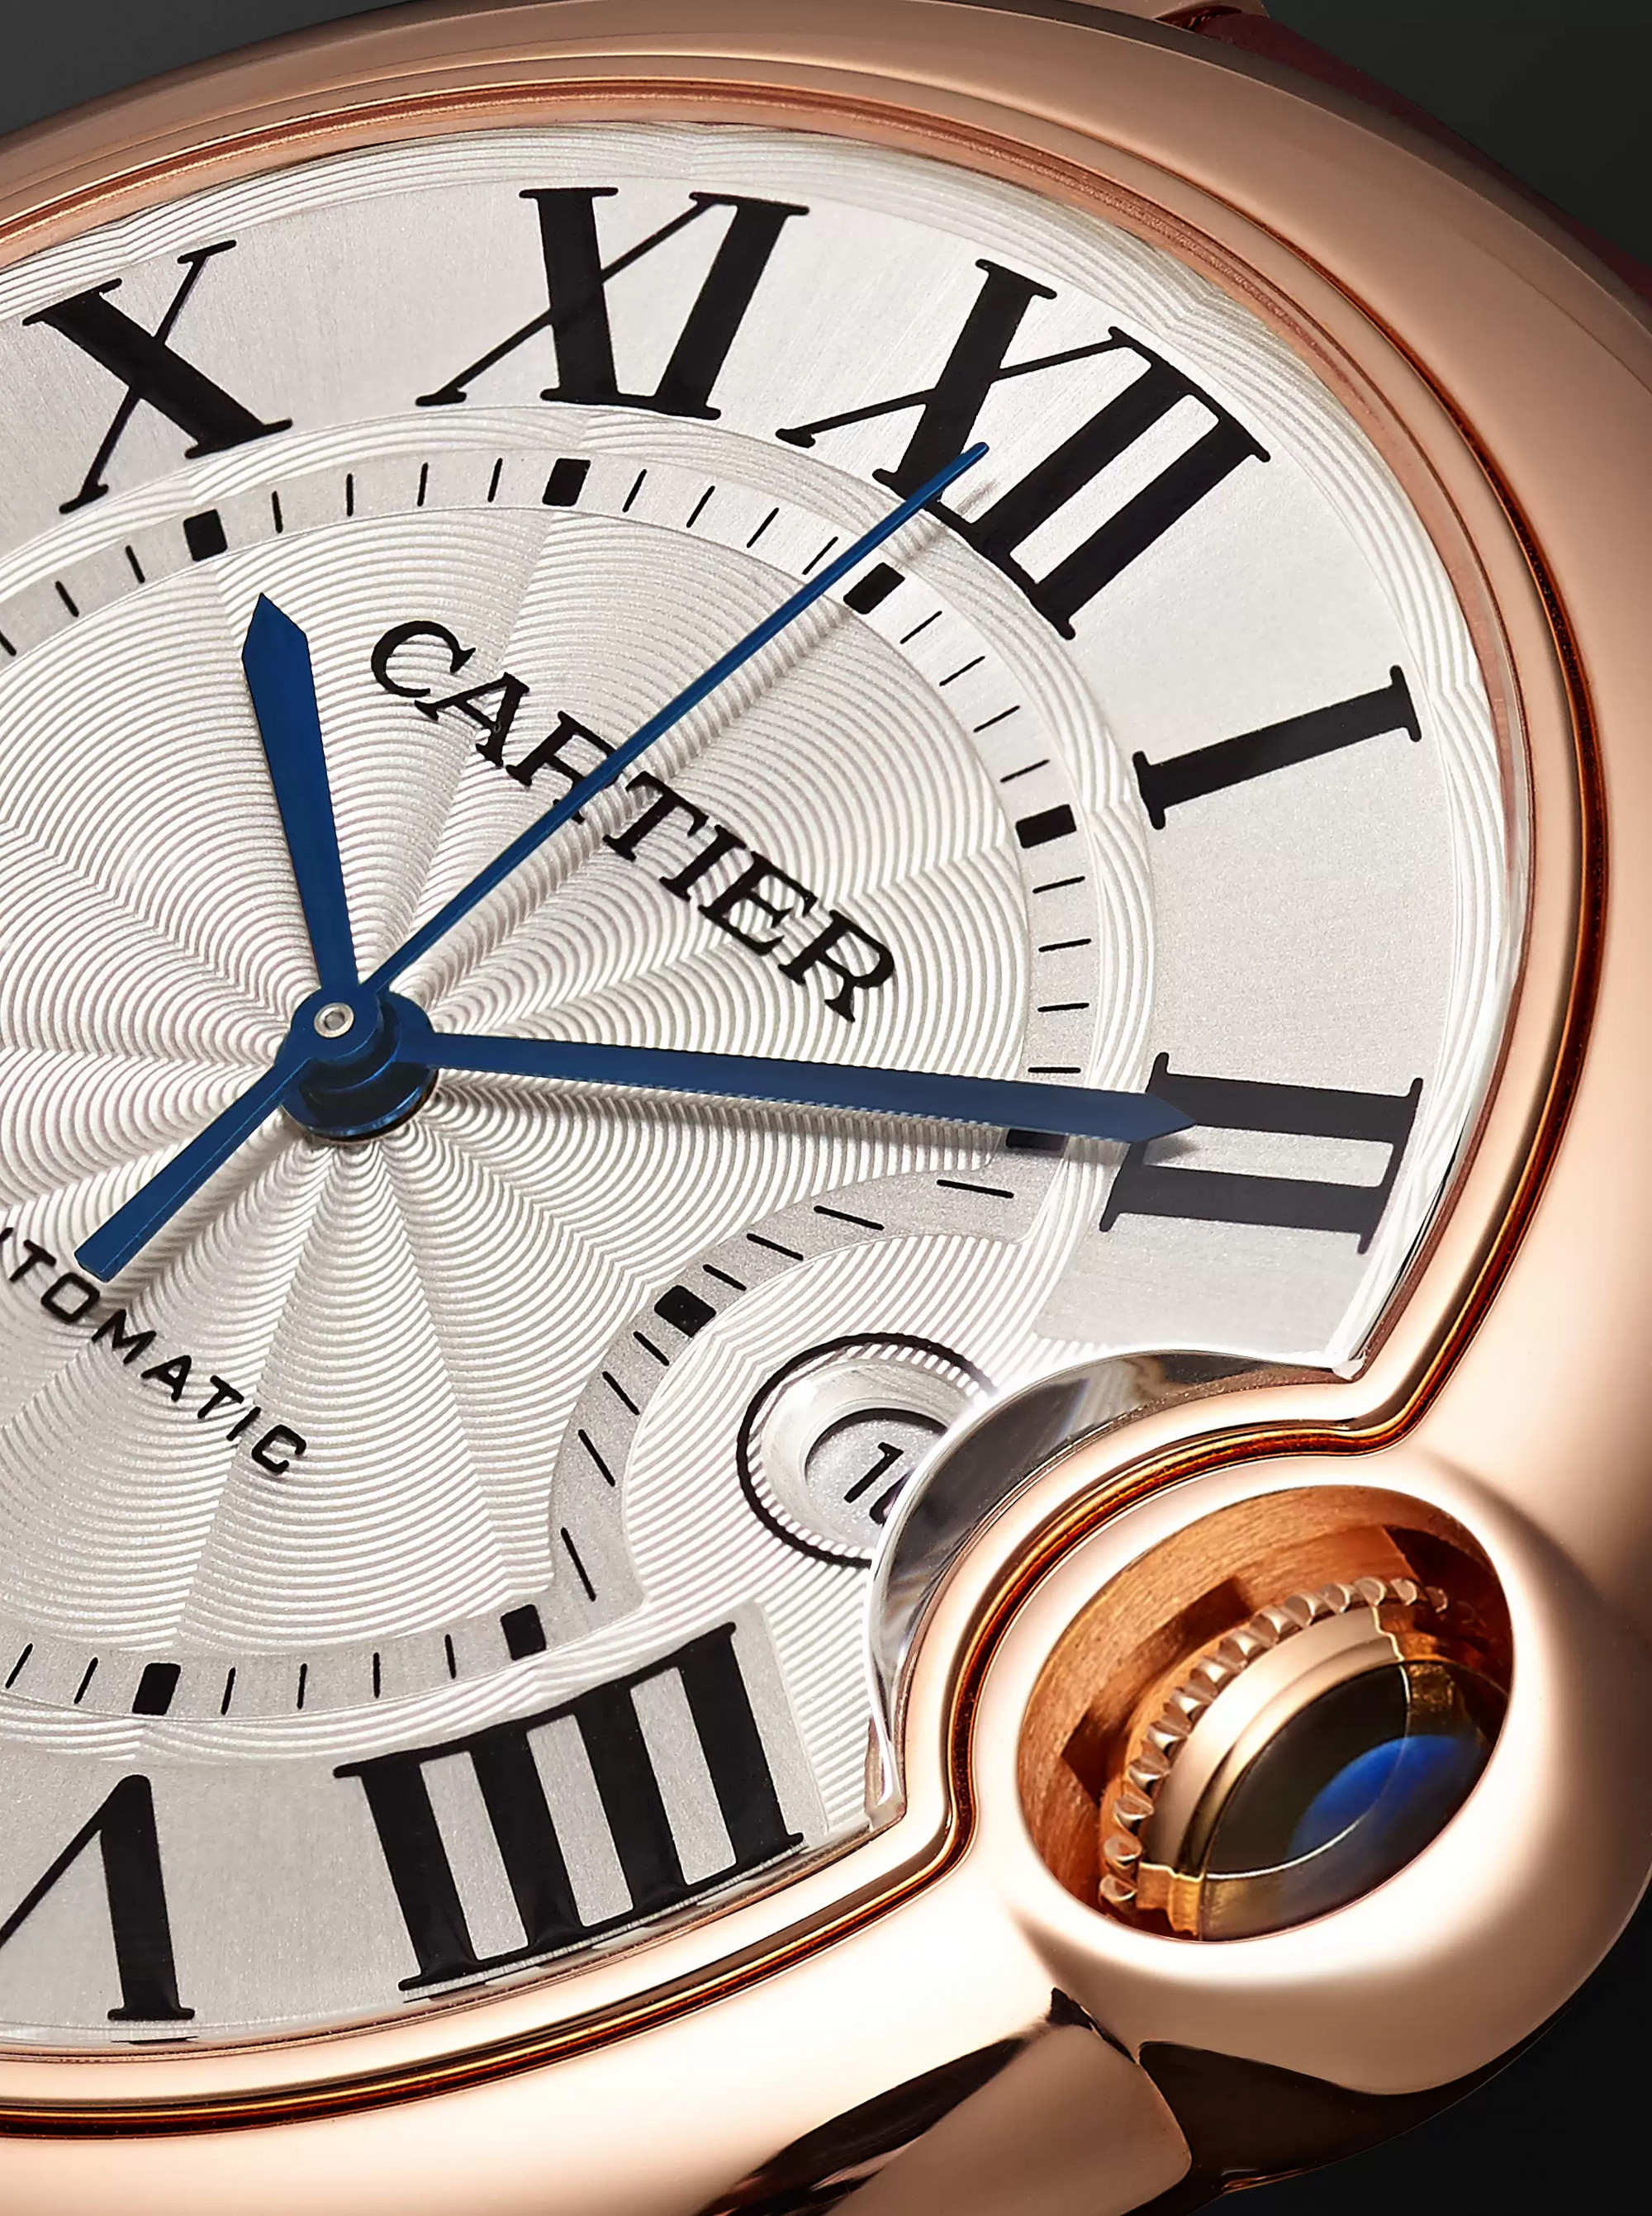 Cartier Ballon Bleu de Cartier Automatic 42mm 18-Karat Pink Gold and Alligator Watch, Ref. No. CRWGBB0017